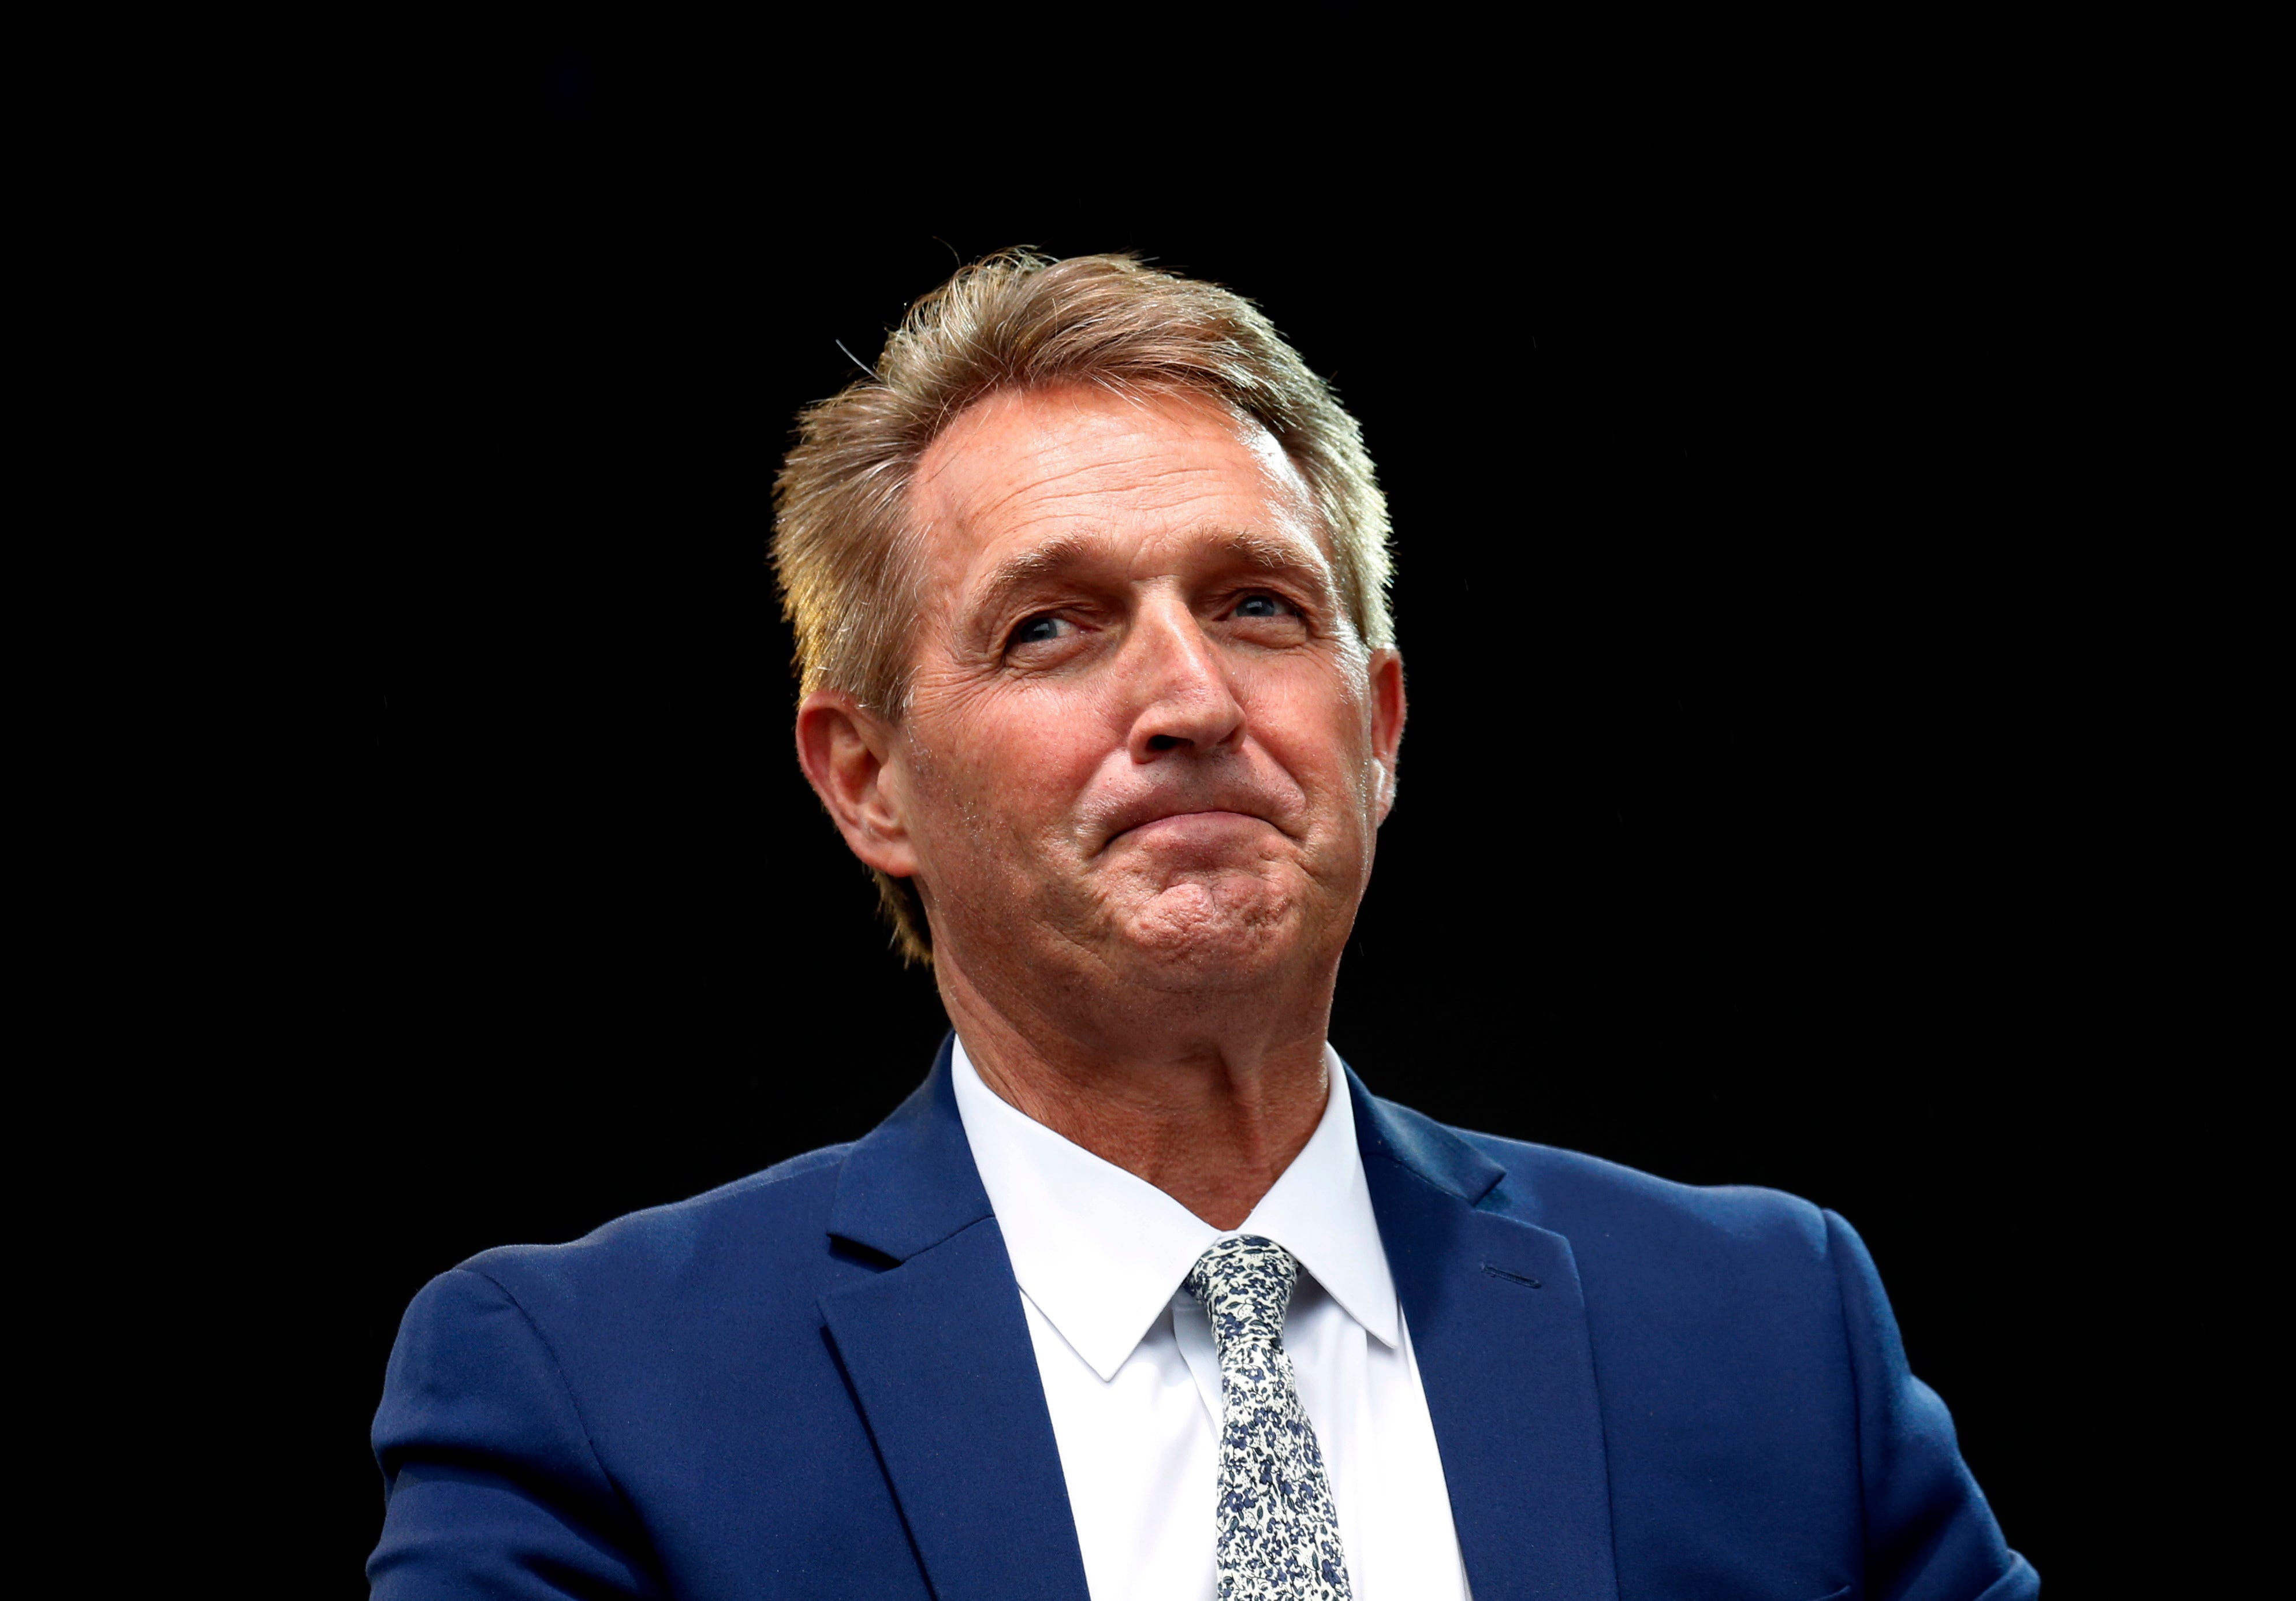 Jeff Flake won't run for president in 2020, joins CBS News as a contributor